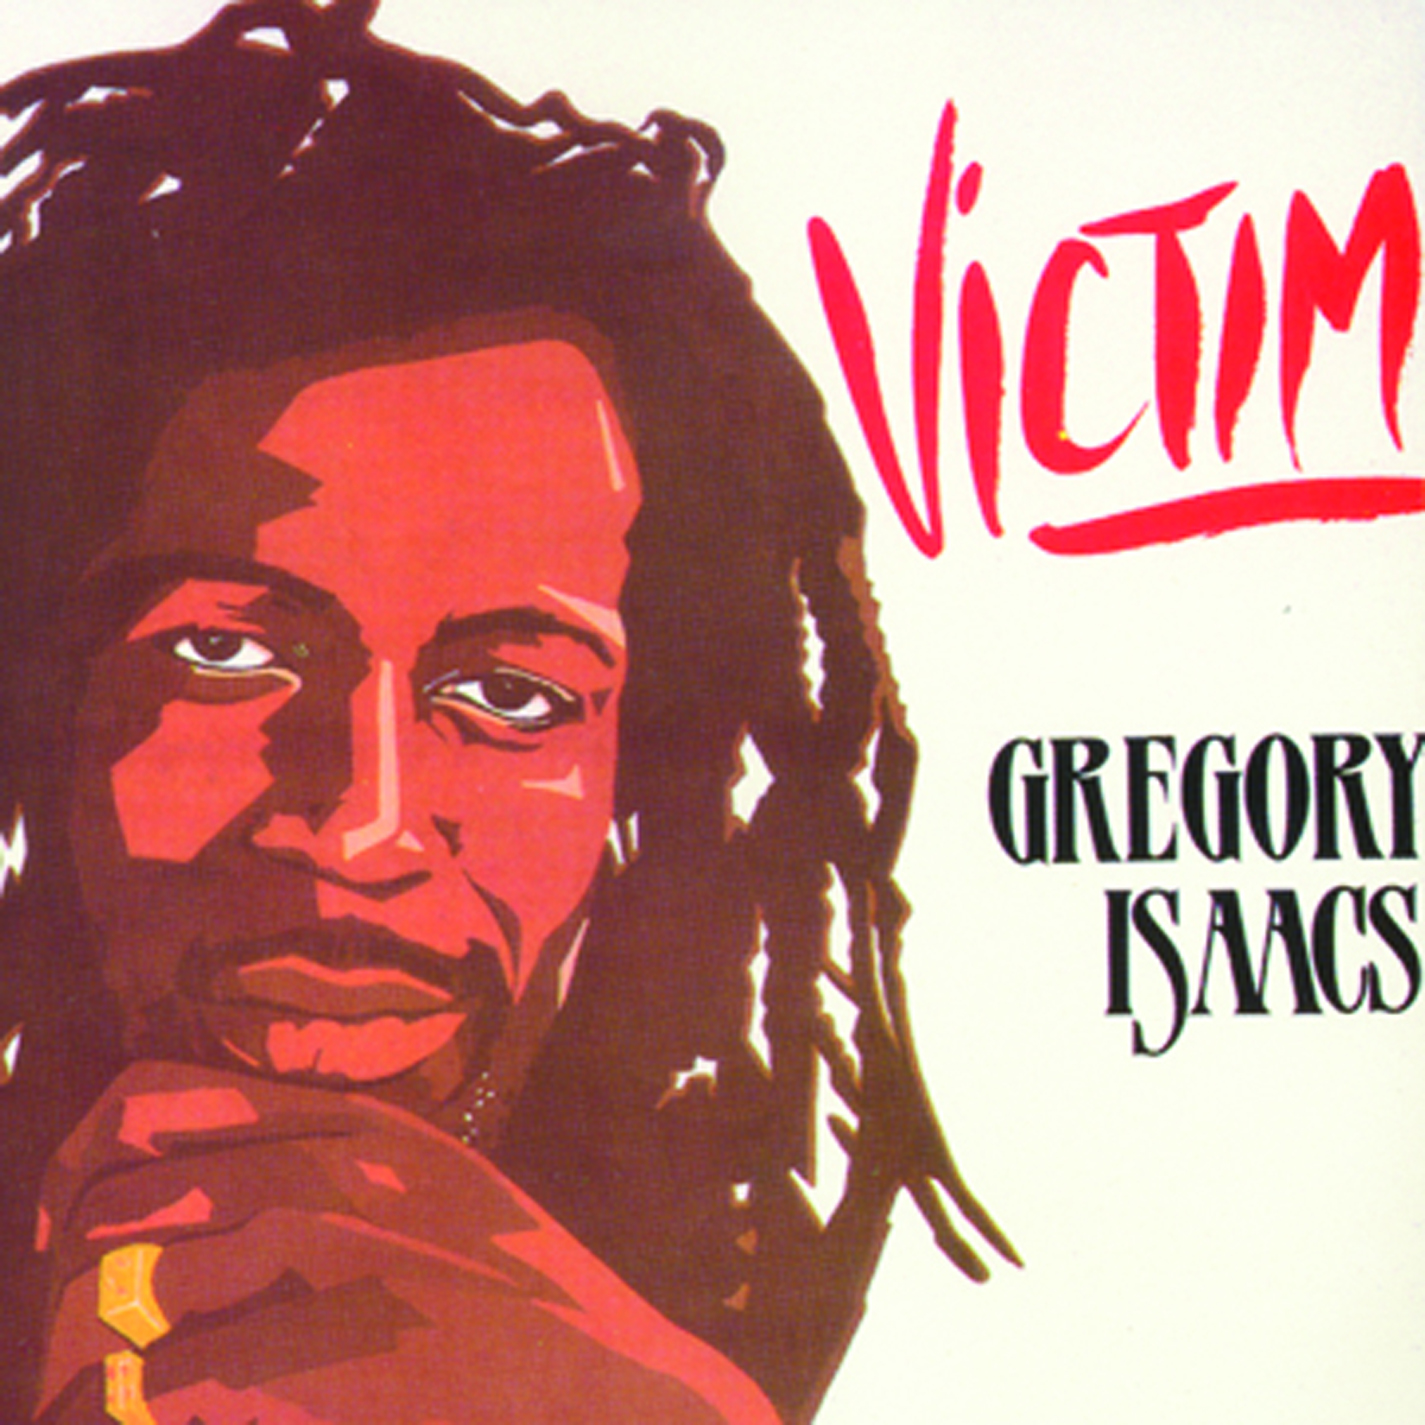 Gregory Isaacs – Victim